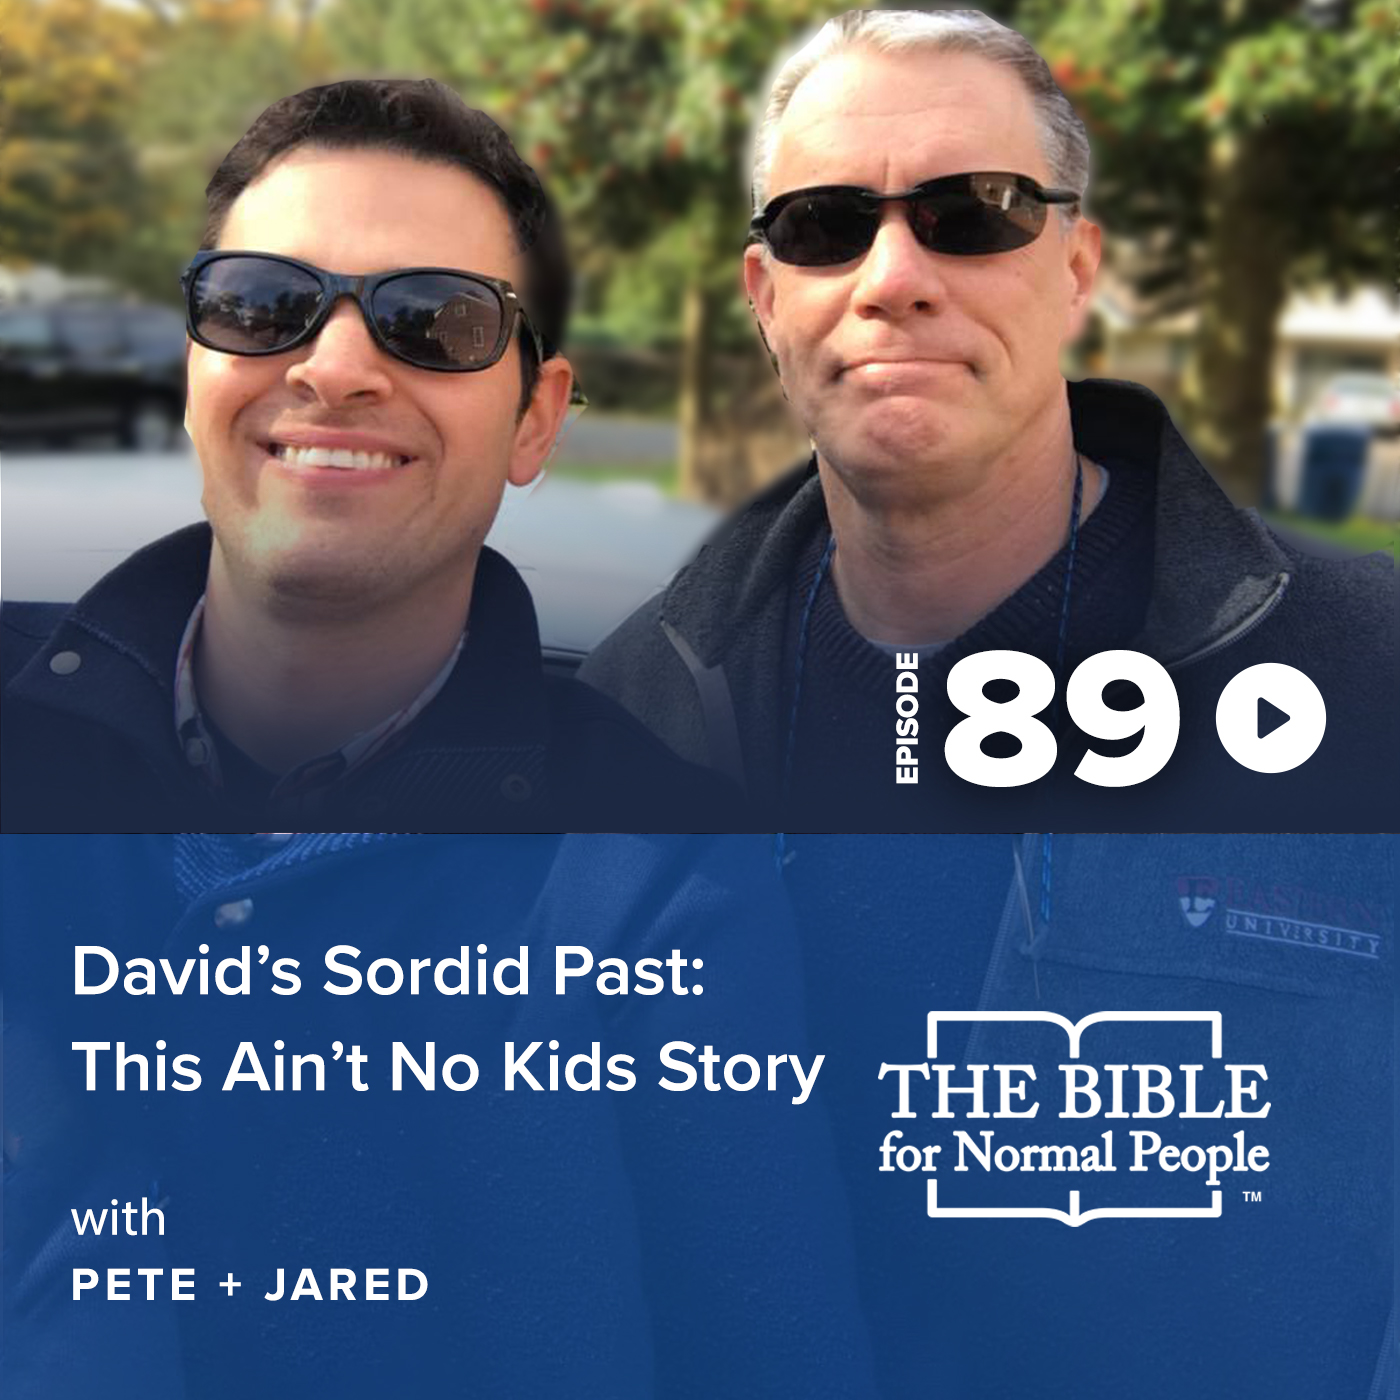 Episode 89: Pete and Jared - David's Sordid Past: This Ain't No Kids Story